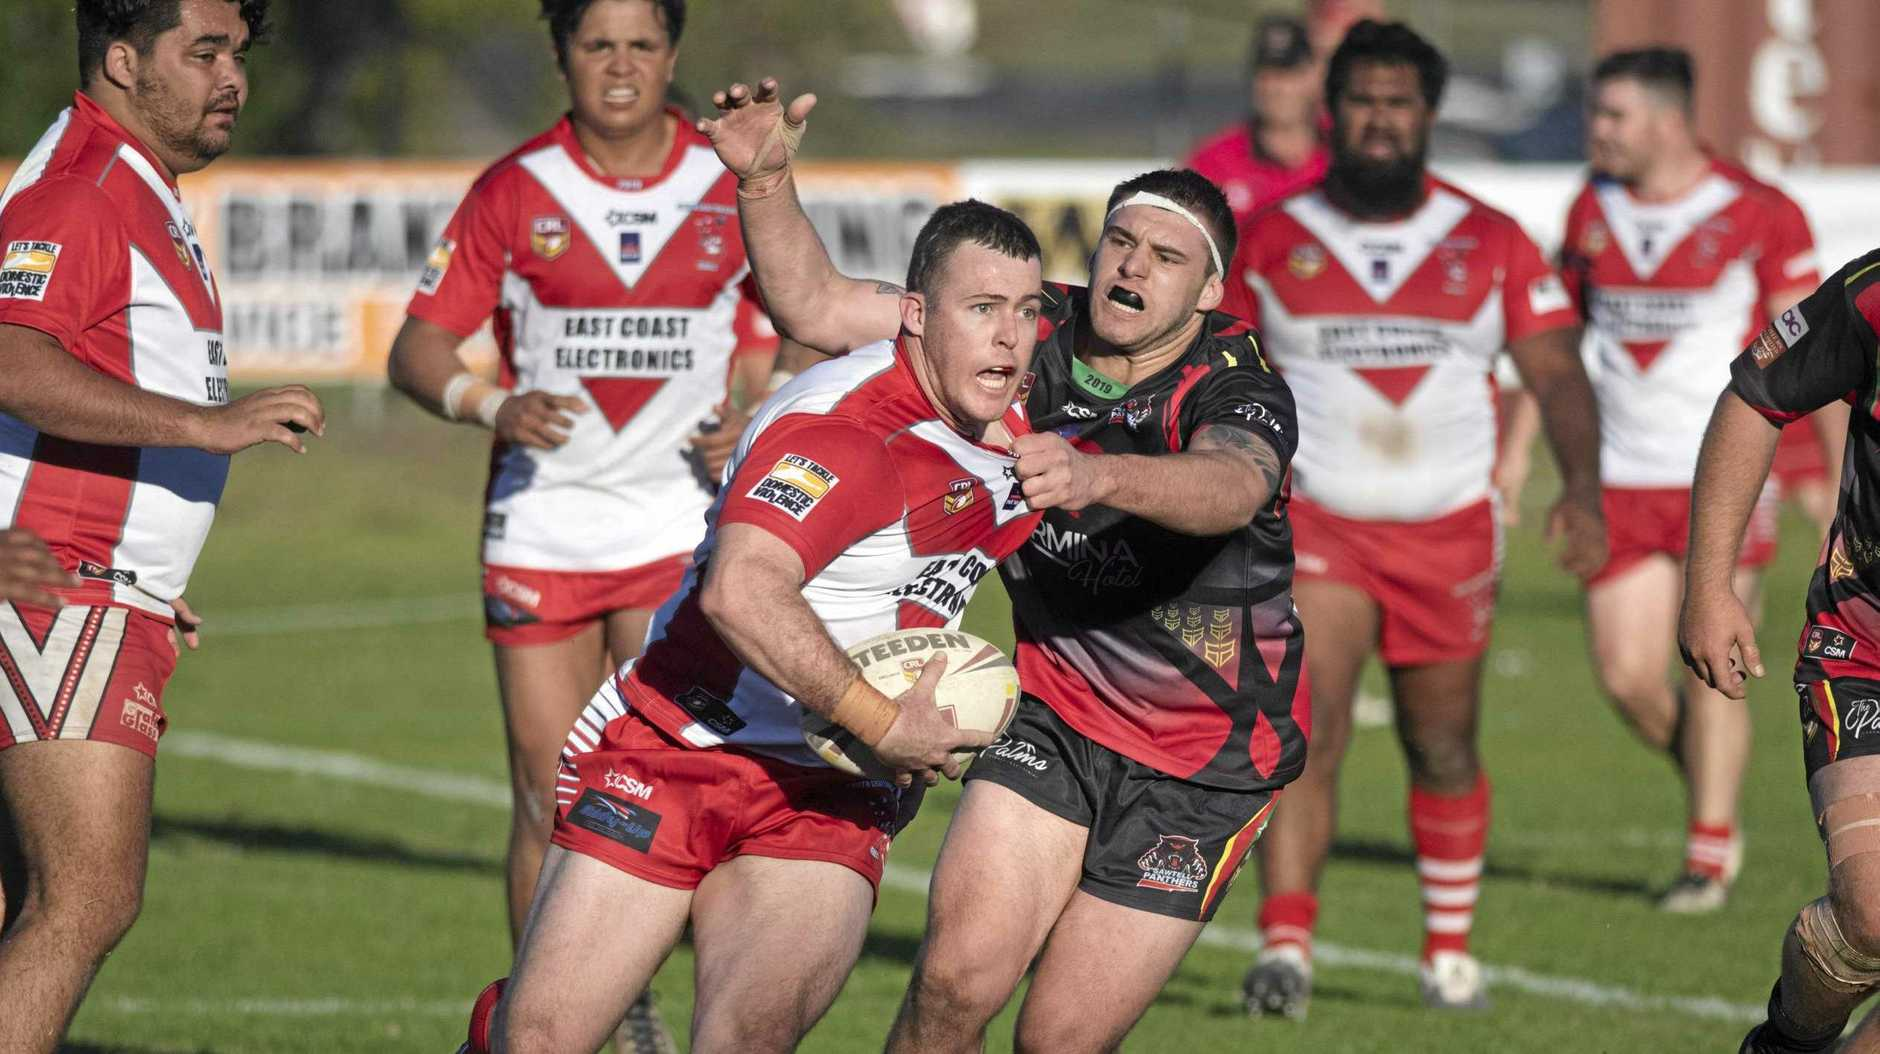 DREAM TEAMWORK: South Grafton Rebels returning captain Luke Welch runs the ball against Sawtell at McKittrick Park. Teammate Allen McKenzie (centre, left)  starred in the game with two tries and an assist.